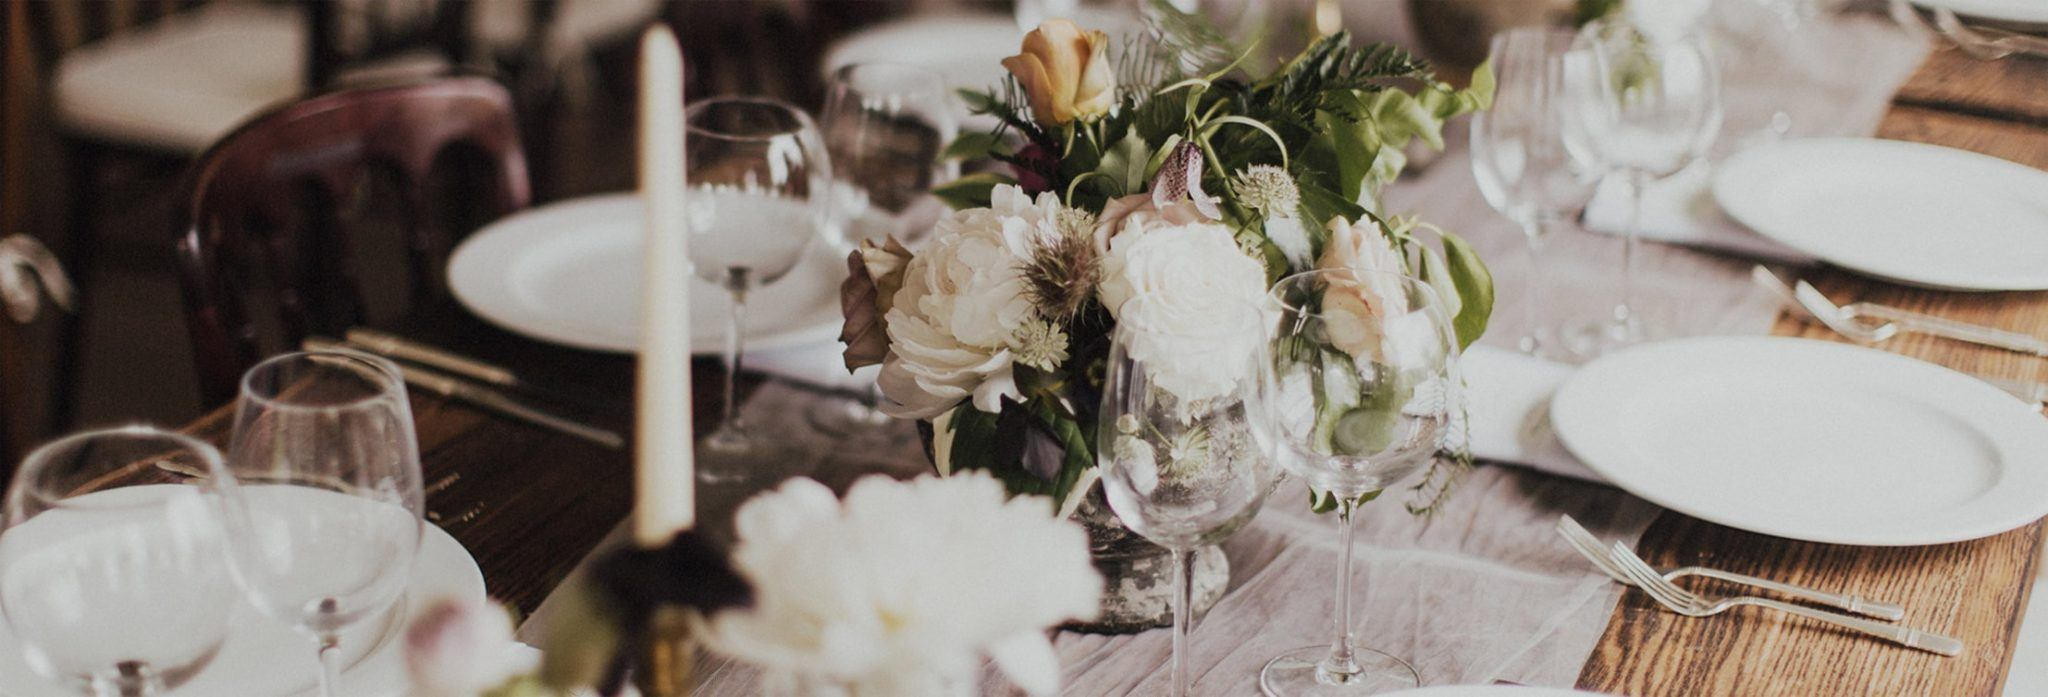 Partial Wedding Planning Philadelphia | The Styled Bride